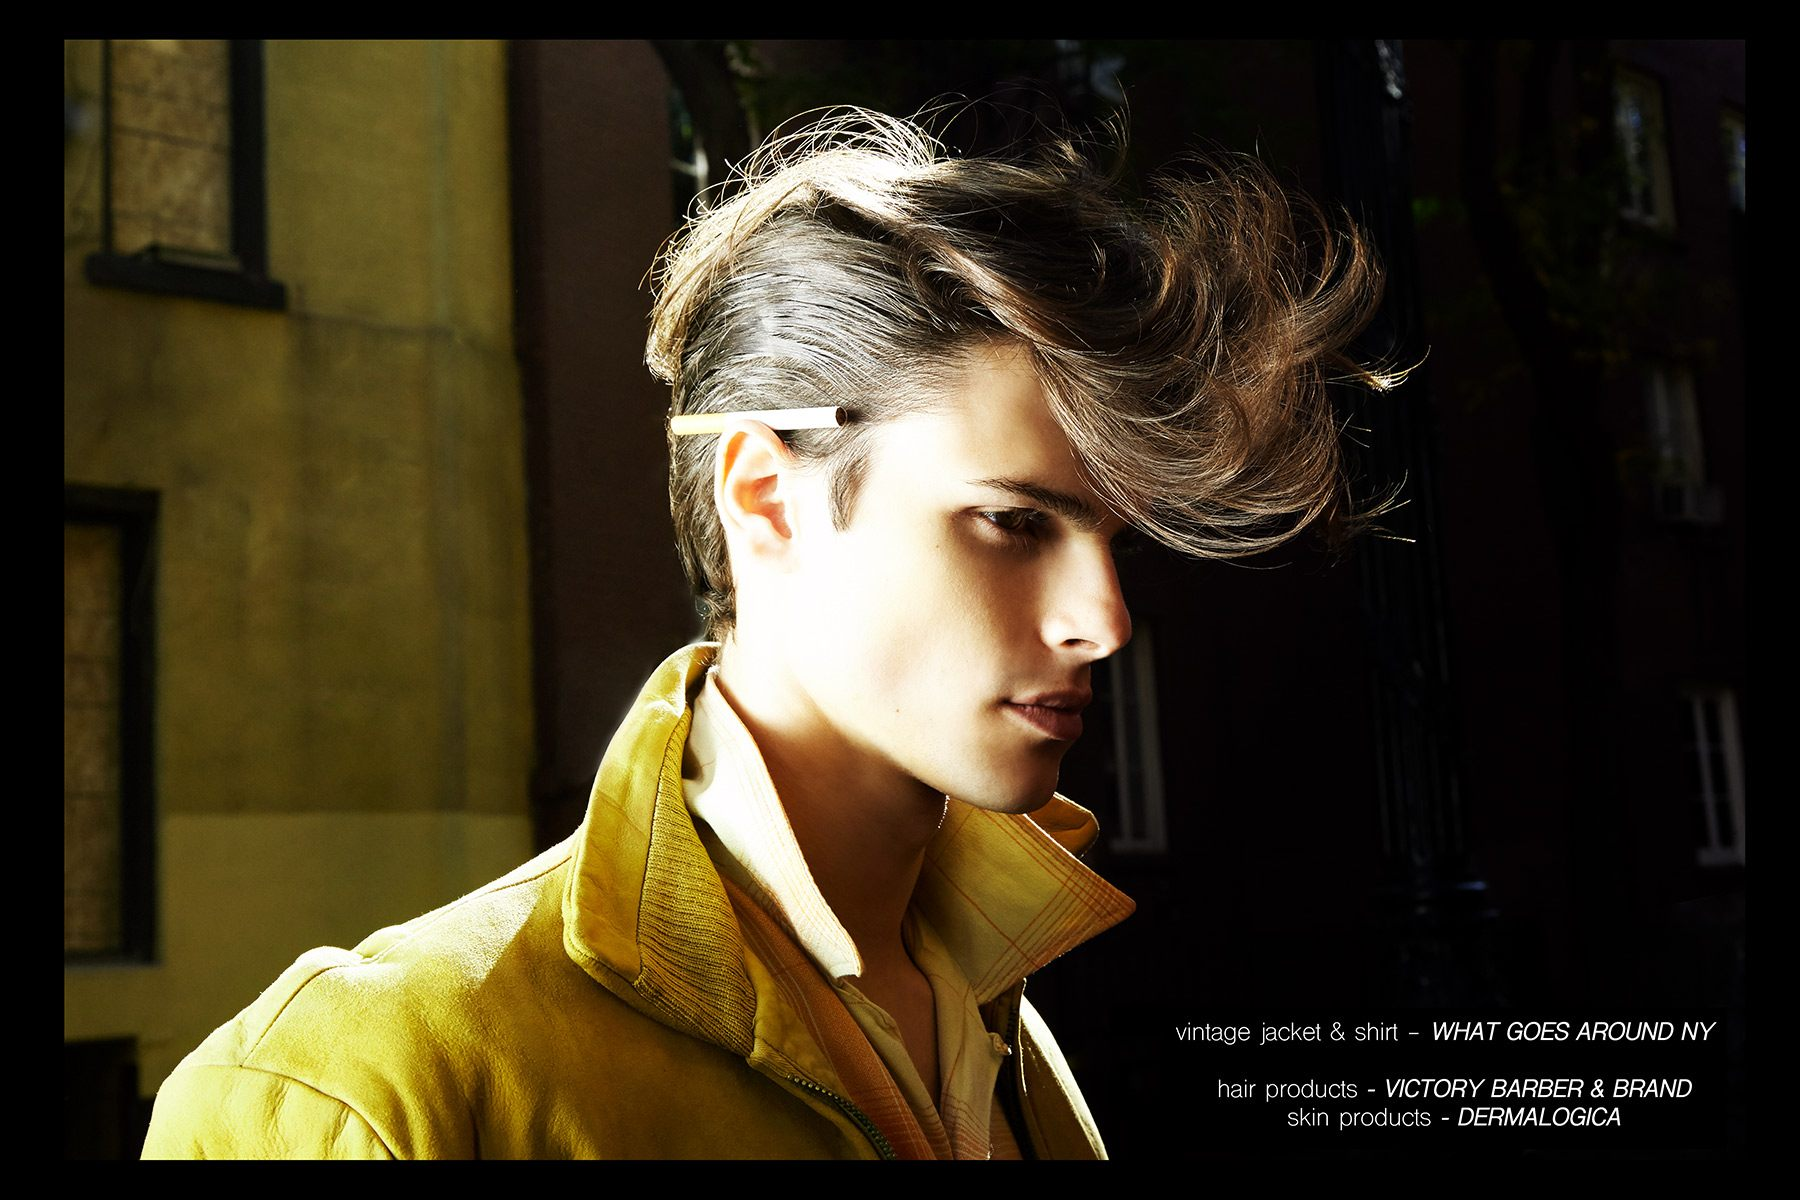 Model Casey Jackson, from New York Model Management, featured in menswear editorial